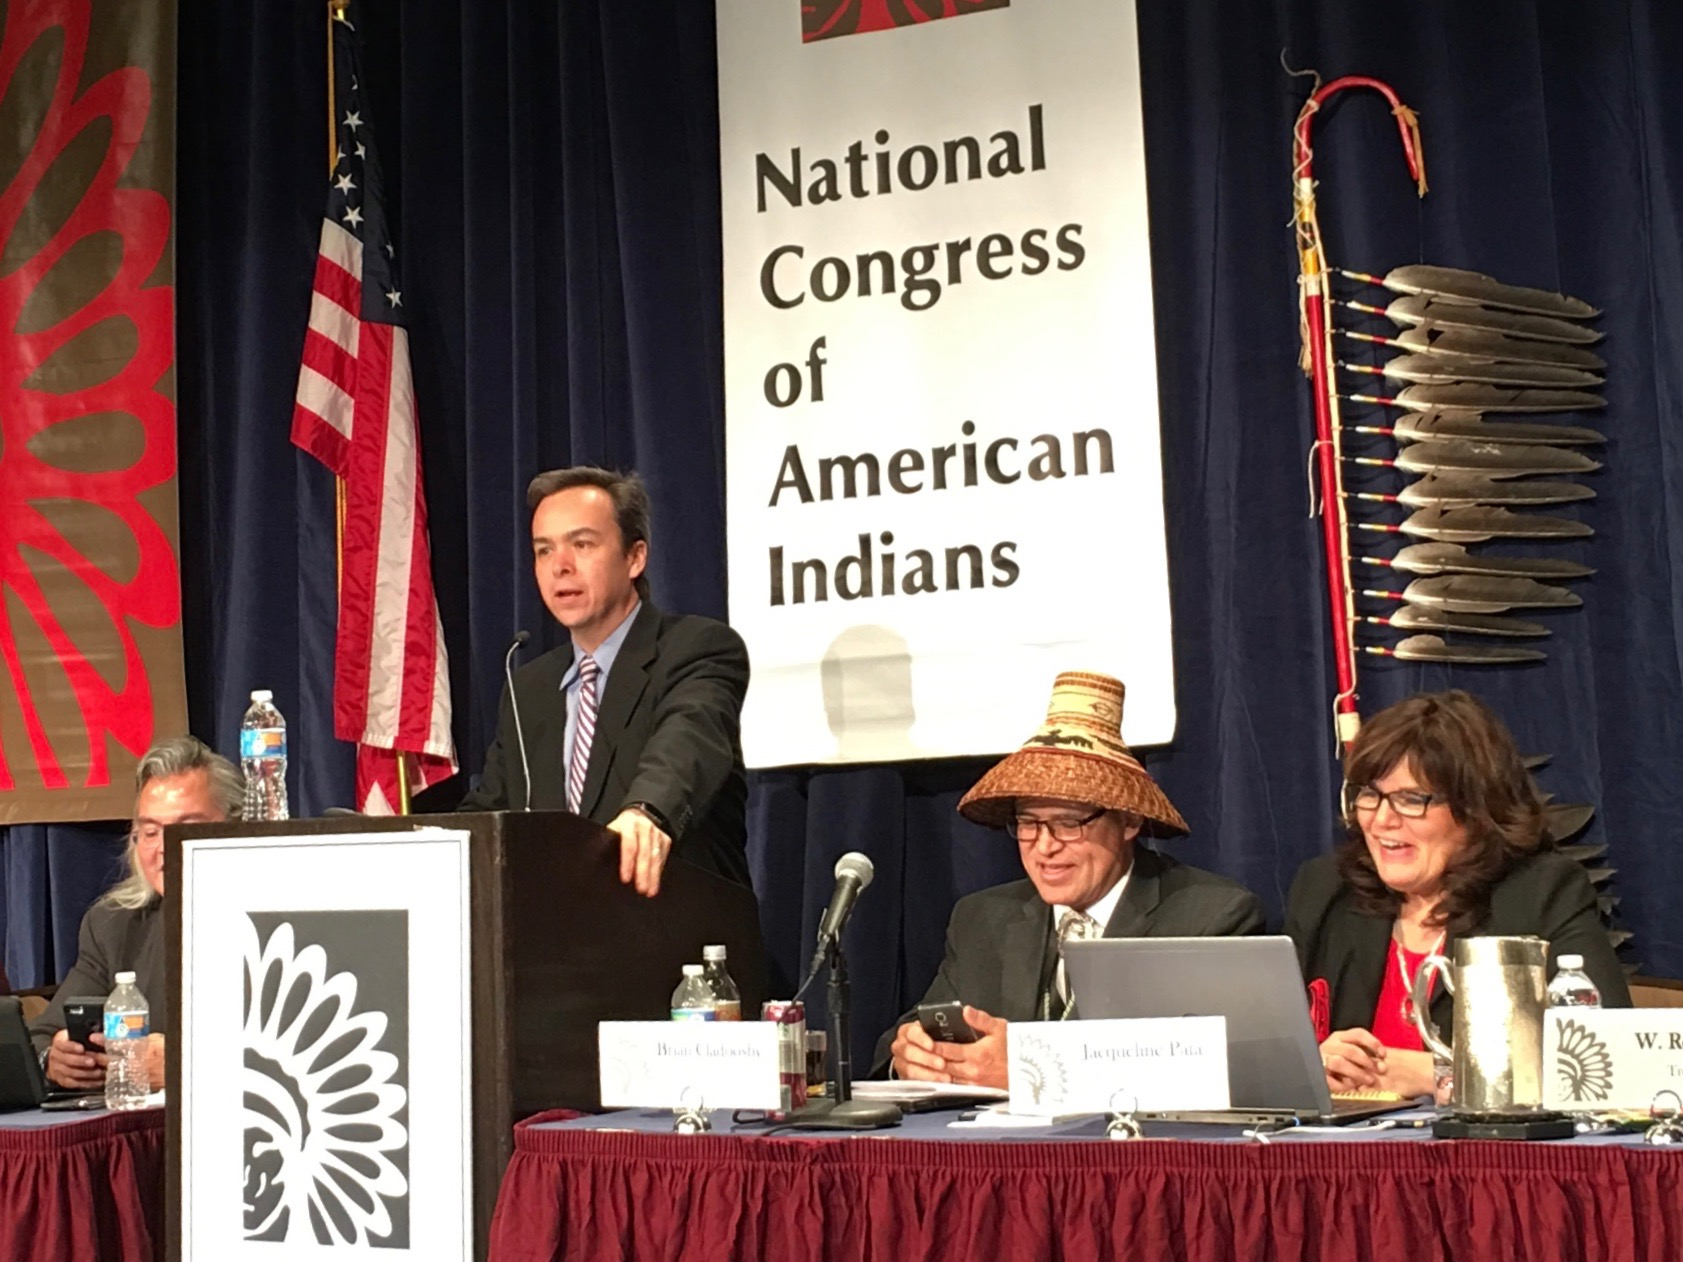 Bureau of Indian Affairs seeks comments on model juvenile code